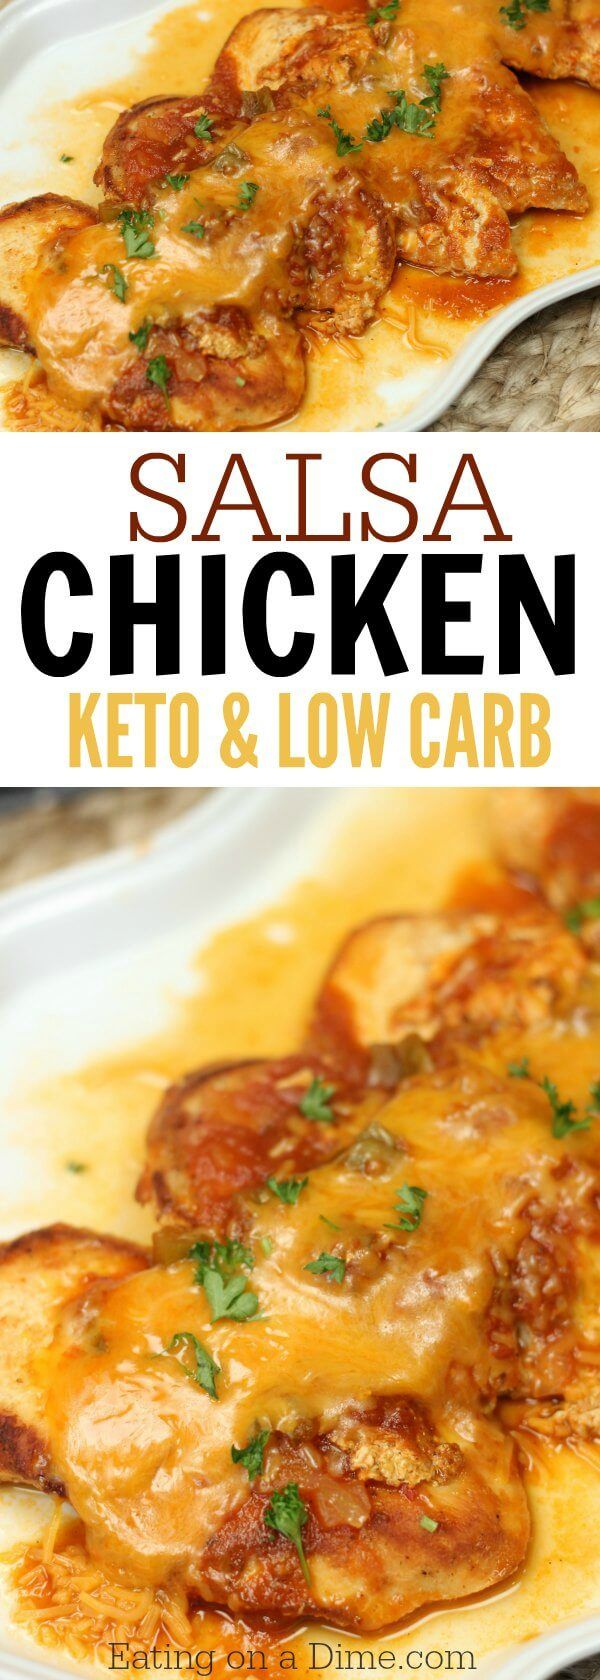 This Easy Salsa Chicken Skillet Recipe is the best low carb recipe! The salsa and cheese make such a yummy Skillet Chicken Recipe for your keto diet. Salsa Chicken Keto Recipe is so easy!